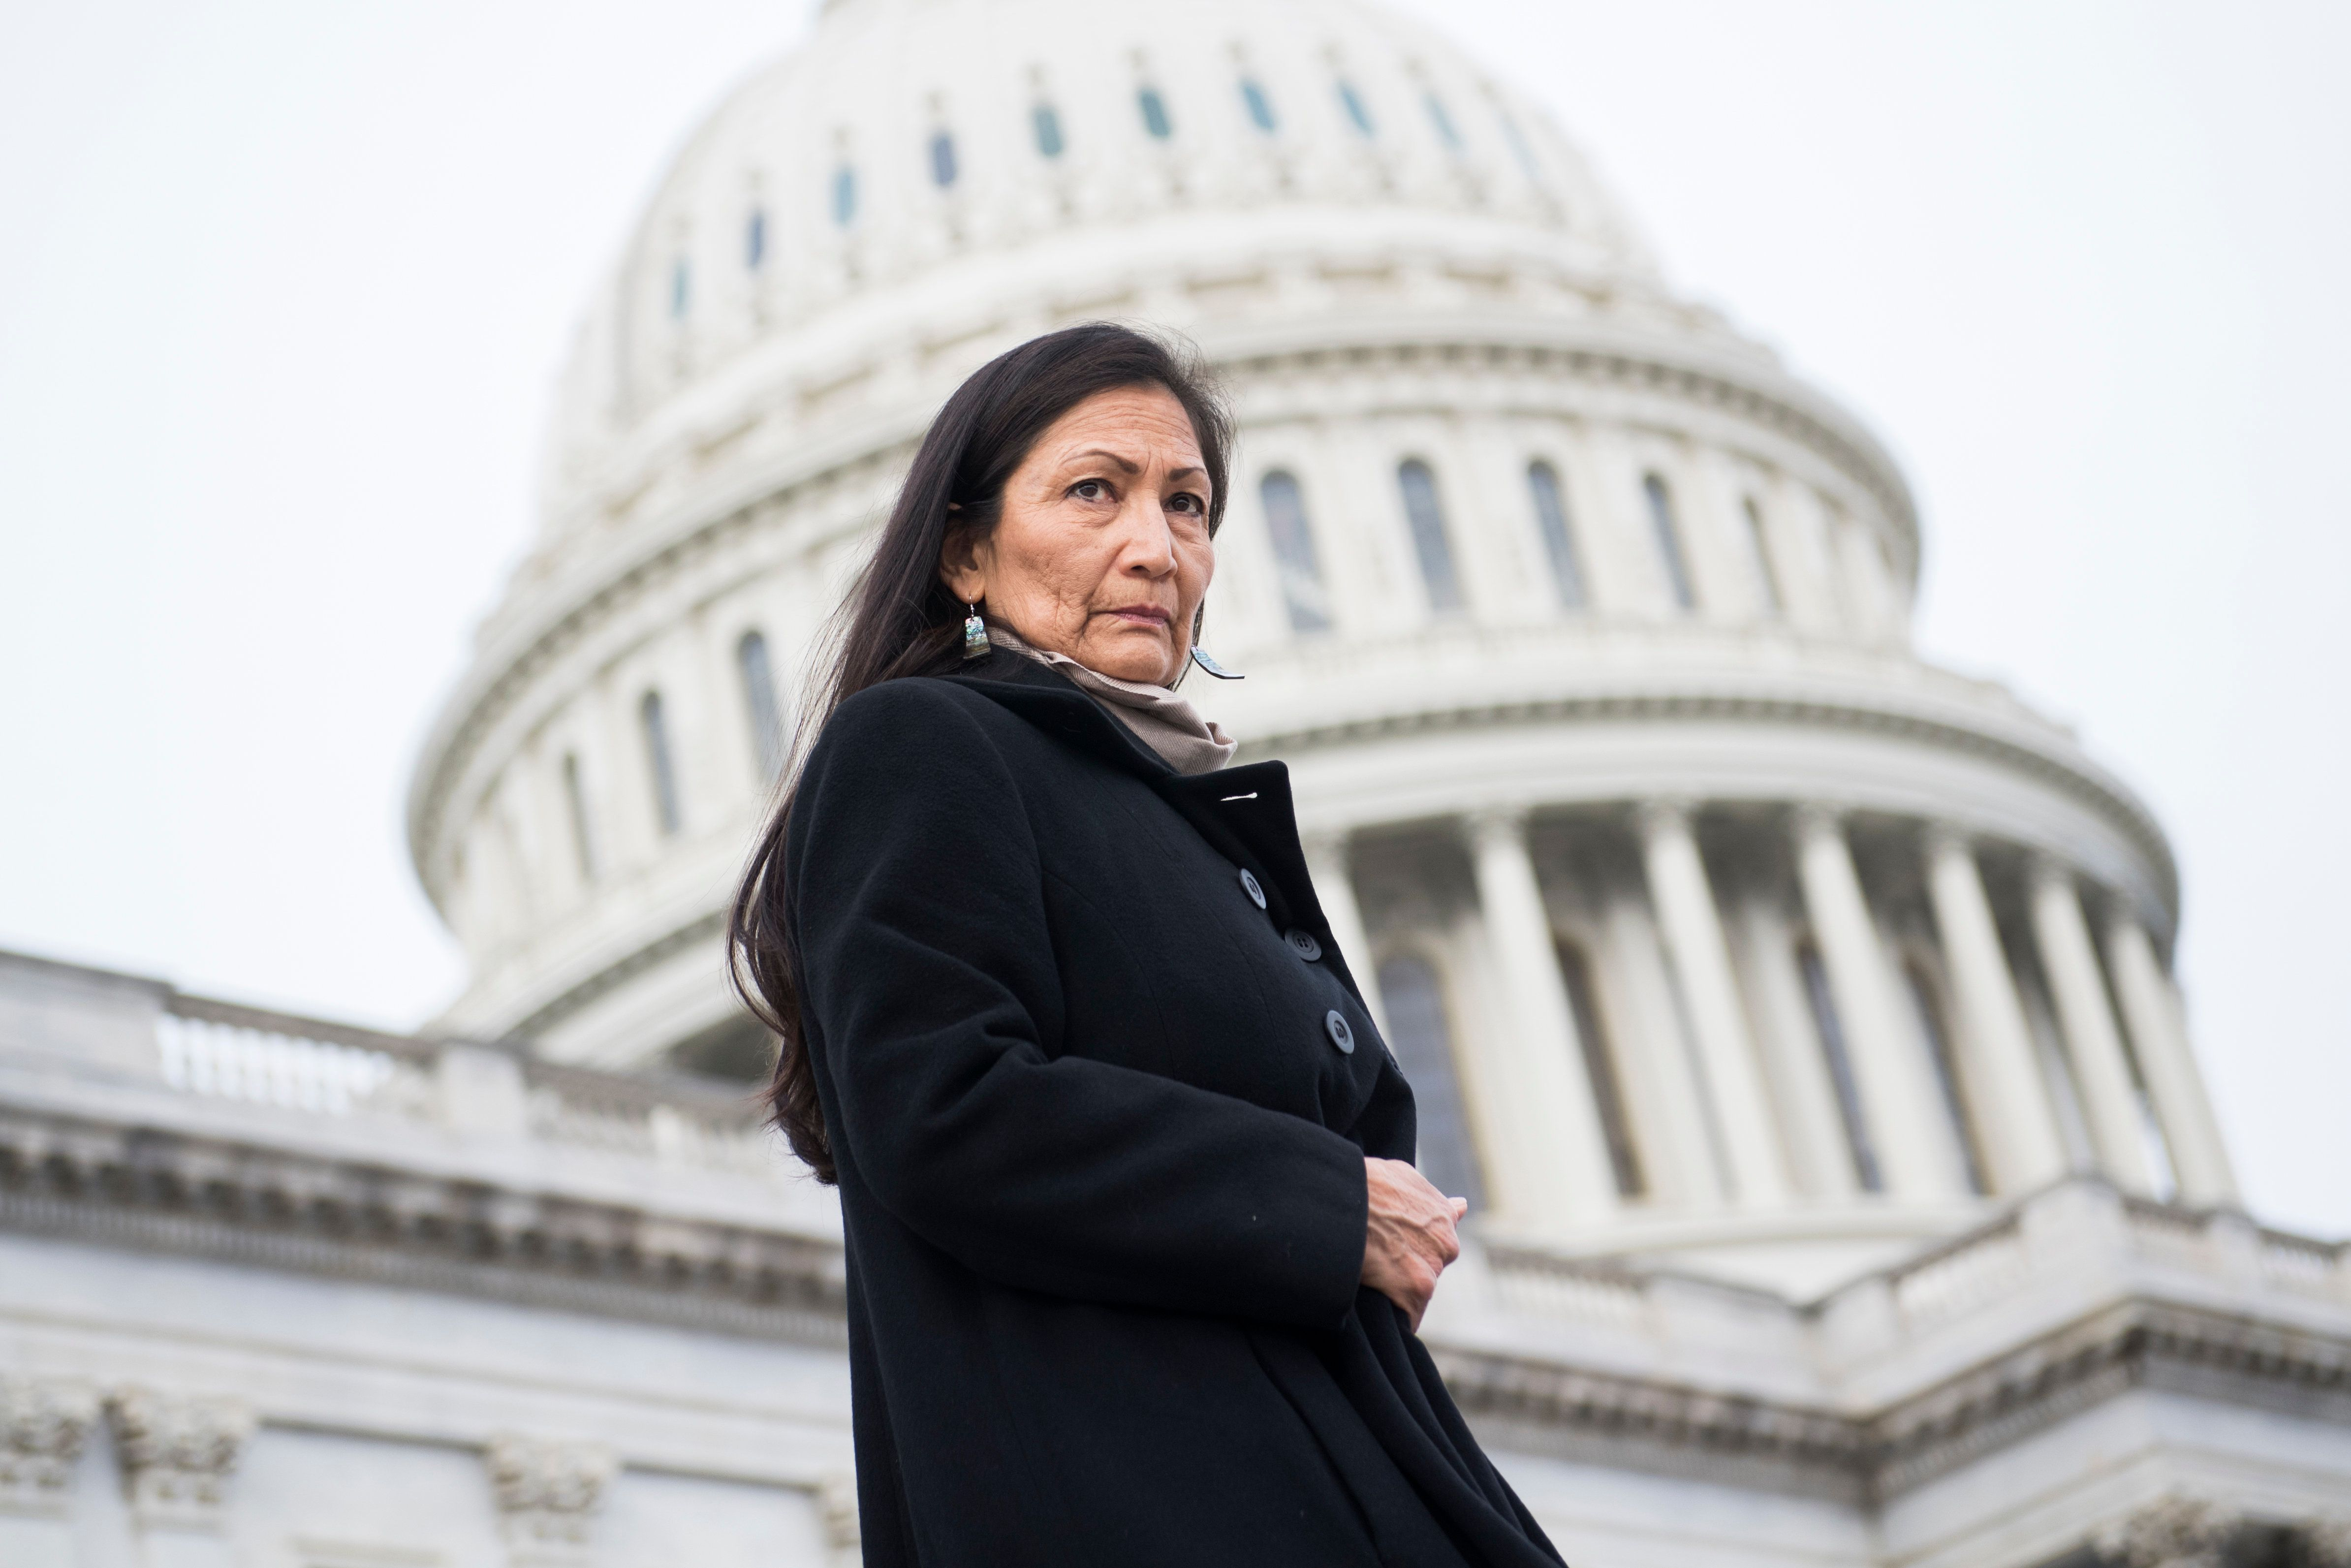 Rep. Deb Haaland (D-N.M.) just showed why it matters that Native American women are finally represented in Congress. It only